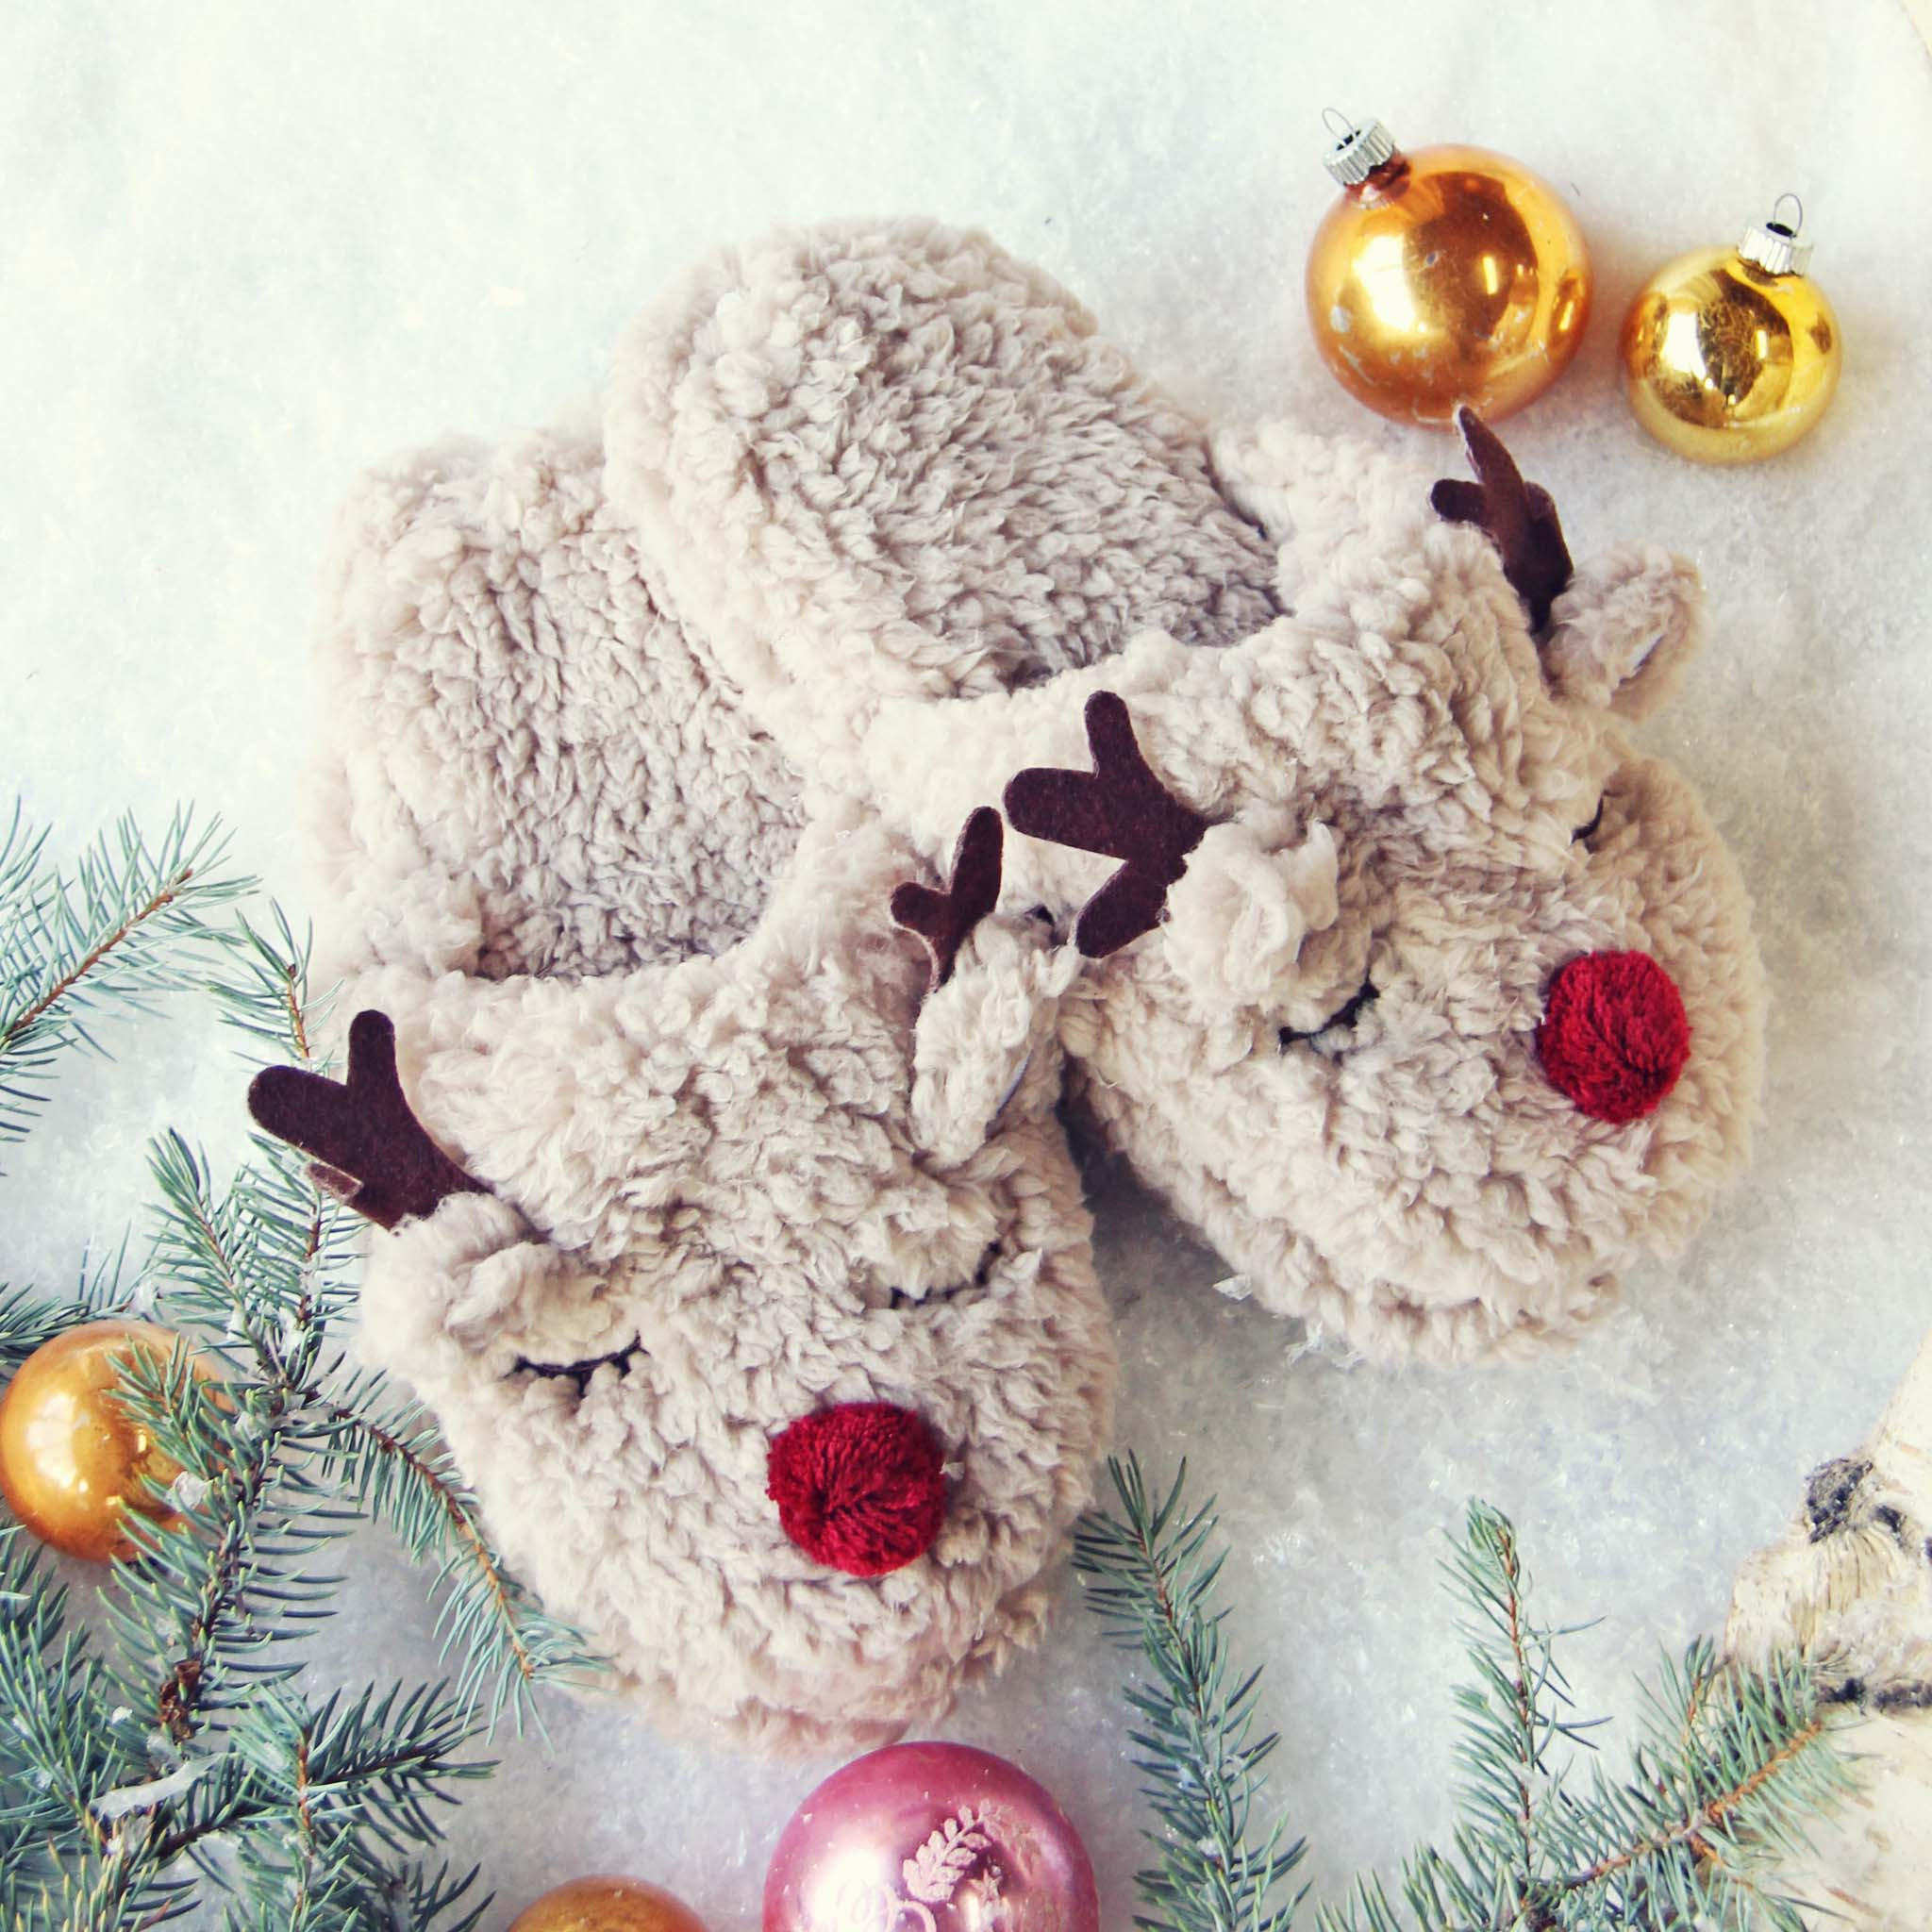 f9d5cbd9dfea Sleepy Reindeer Slippers from Spool No.72